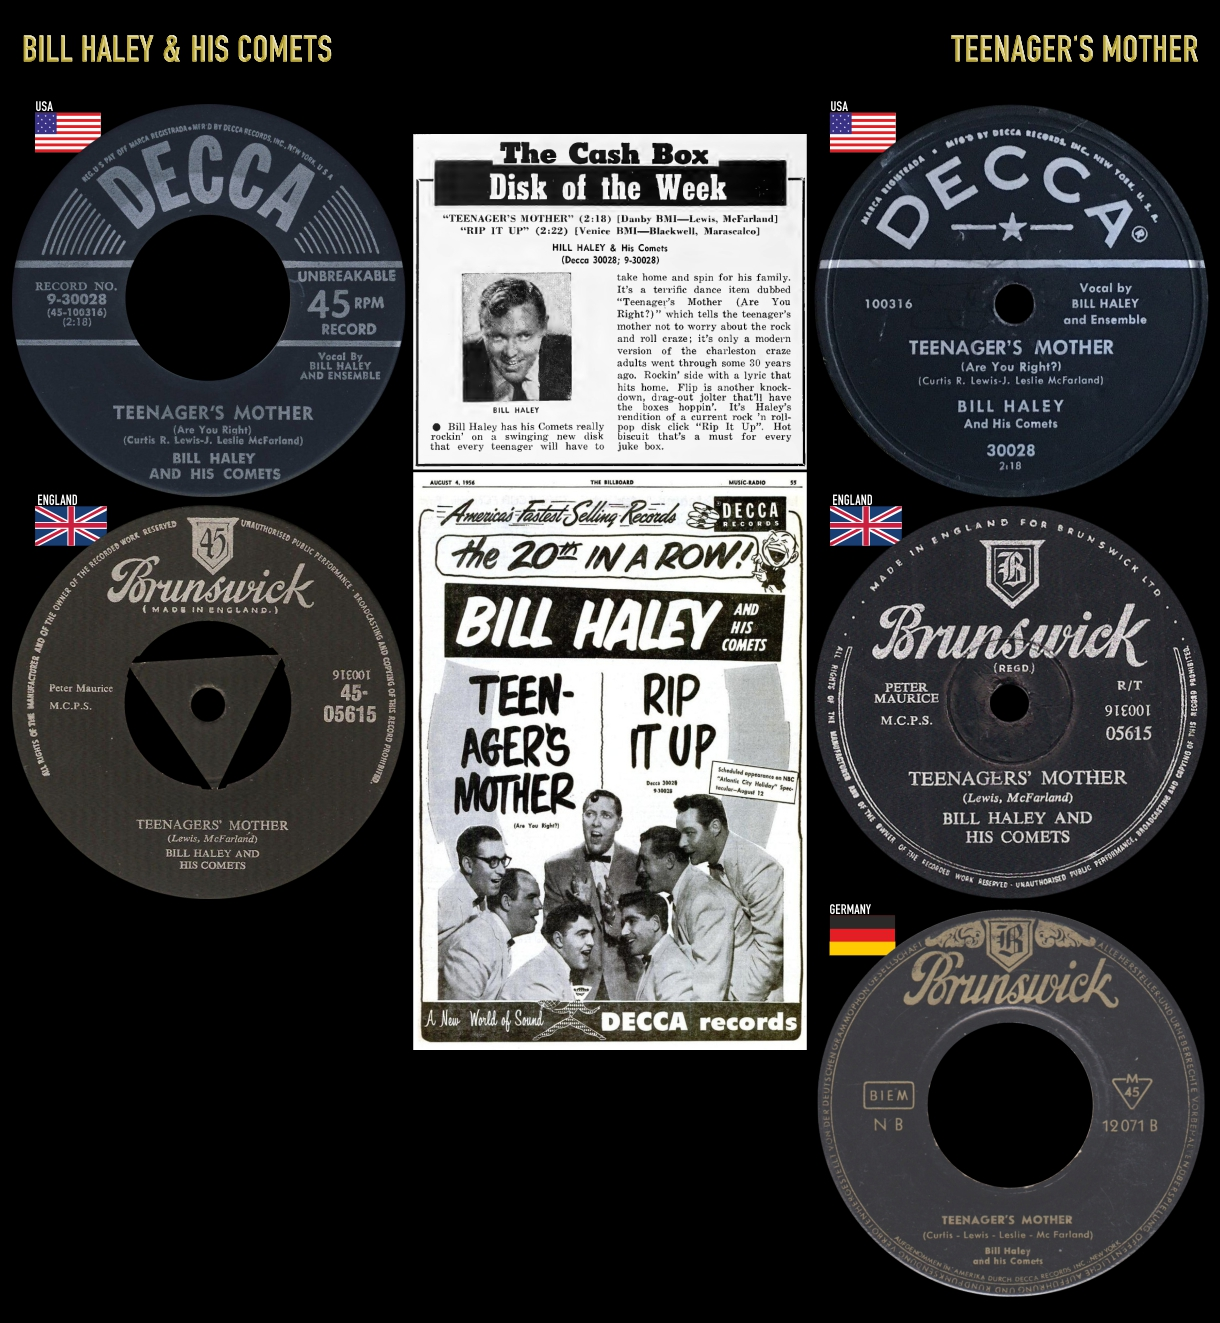 560811_Bill Haley_Teenager's Mother#